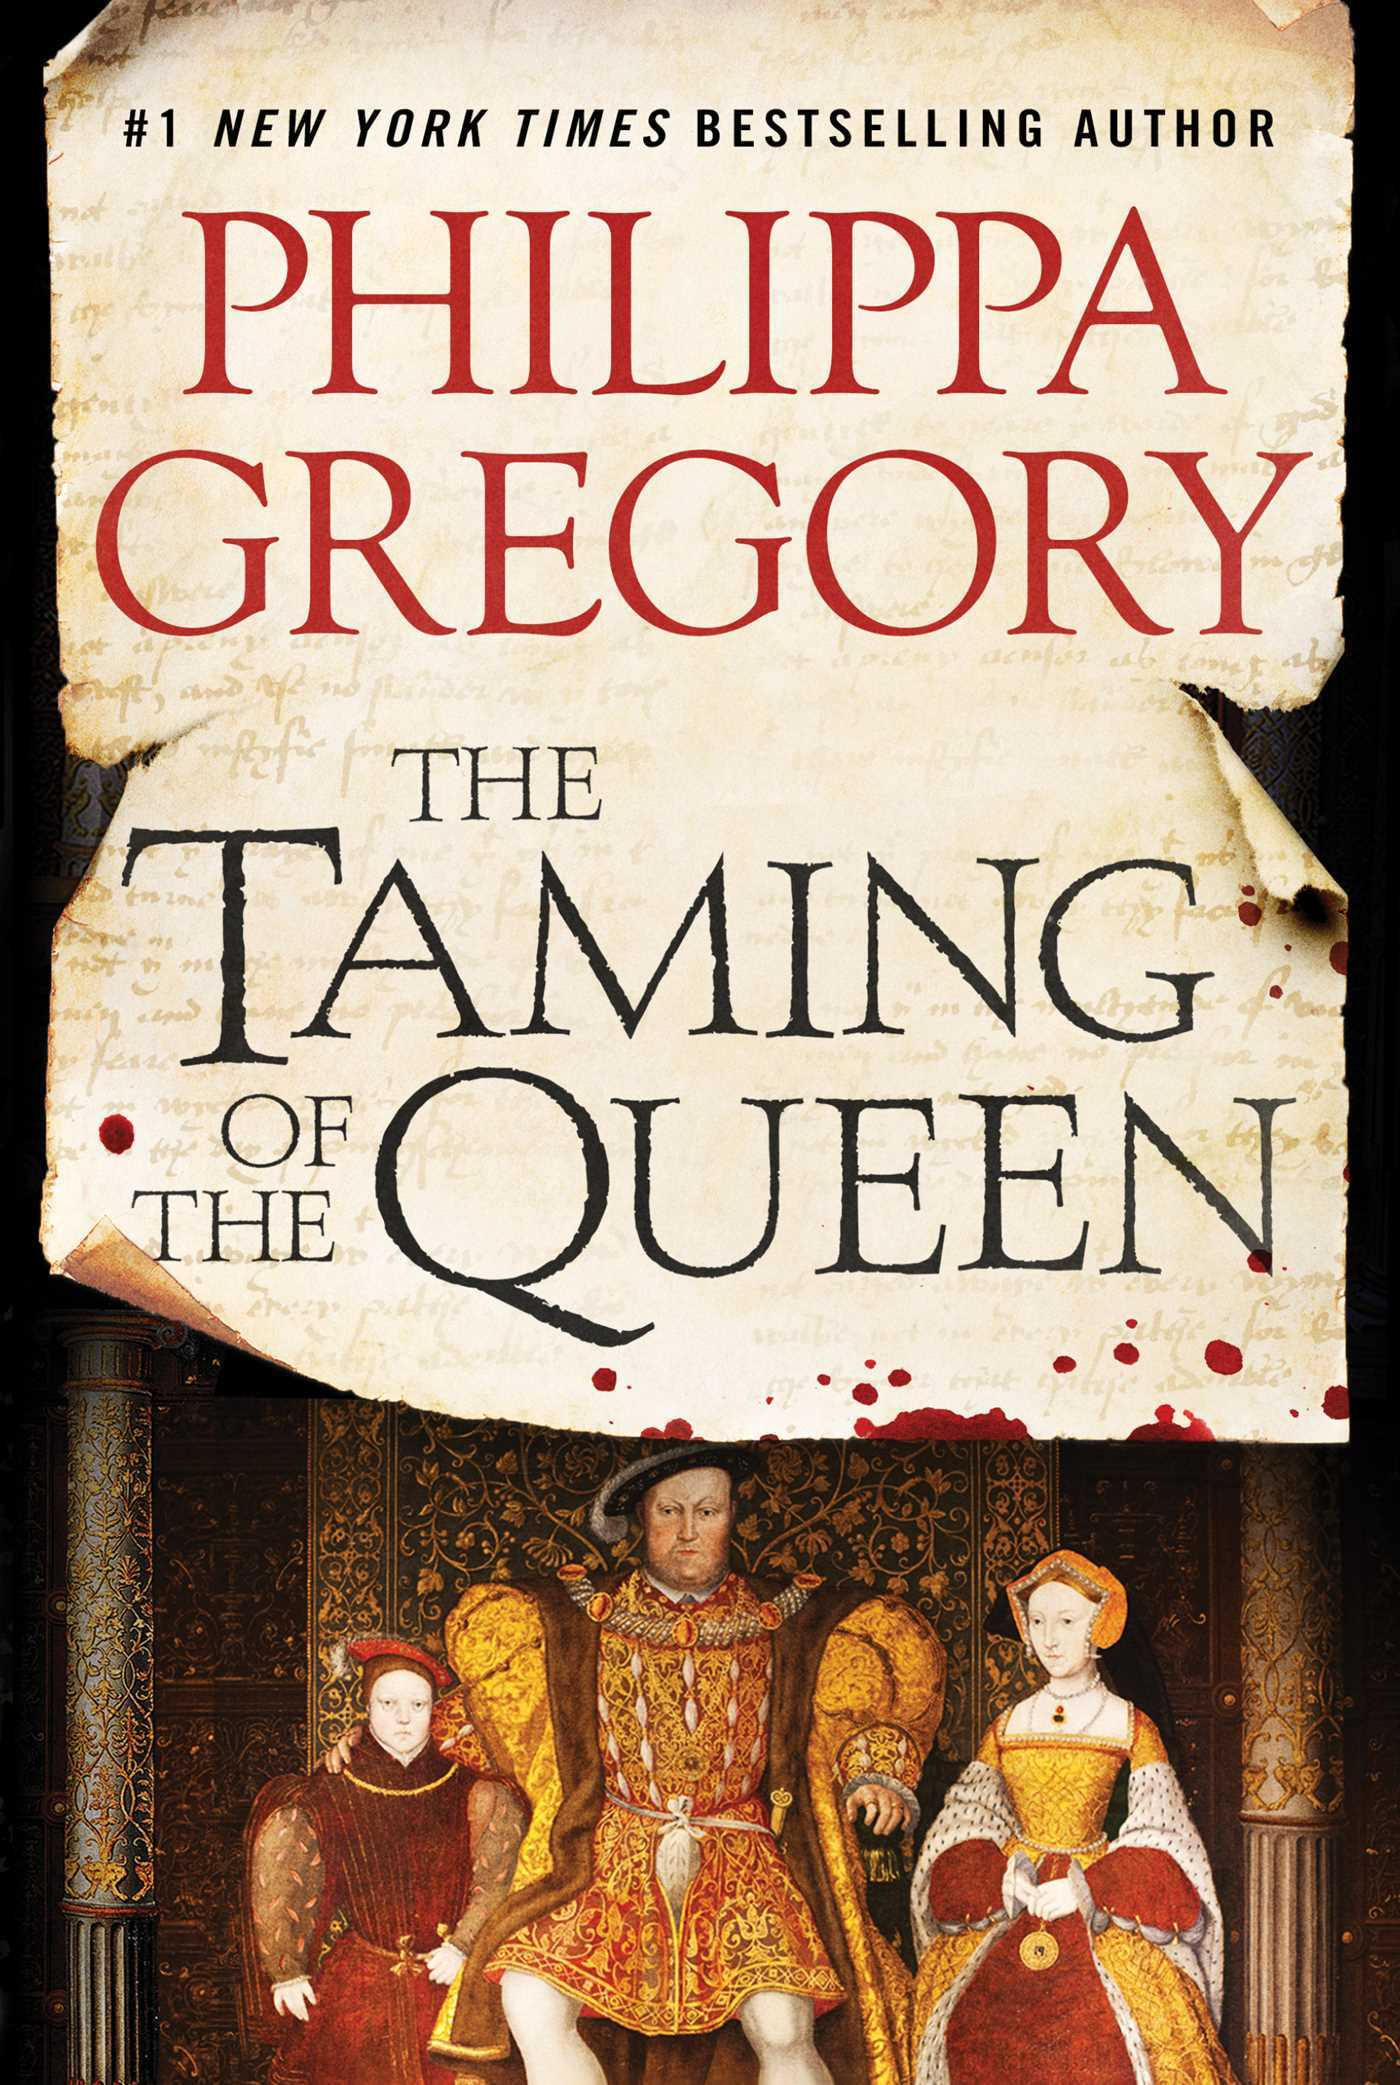 The Taming of the Queen US Cover